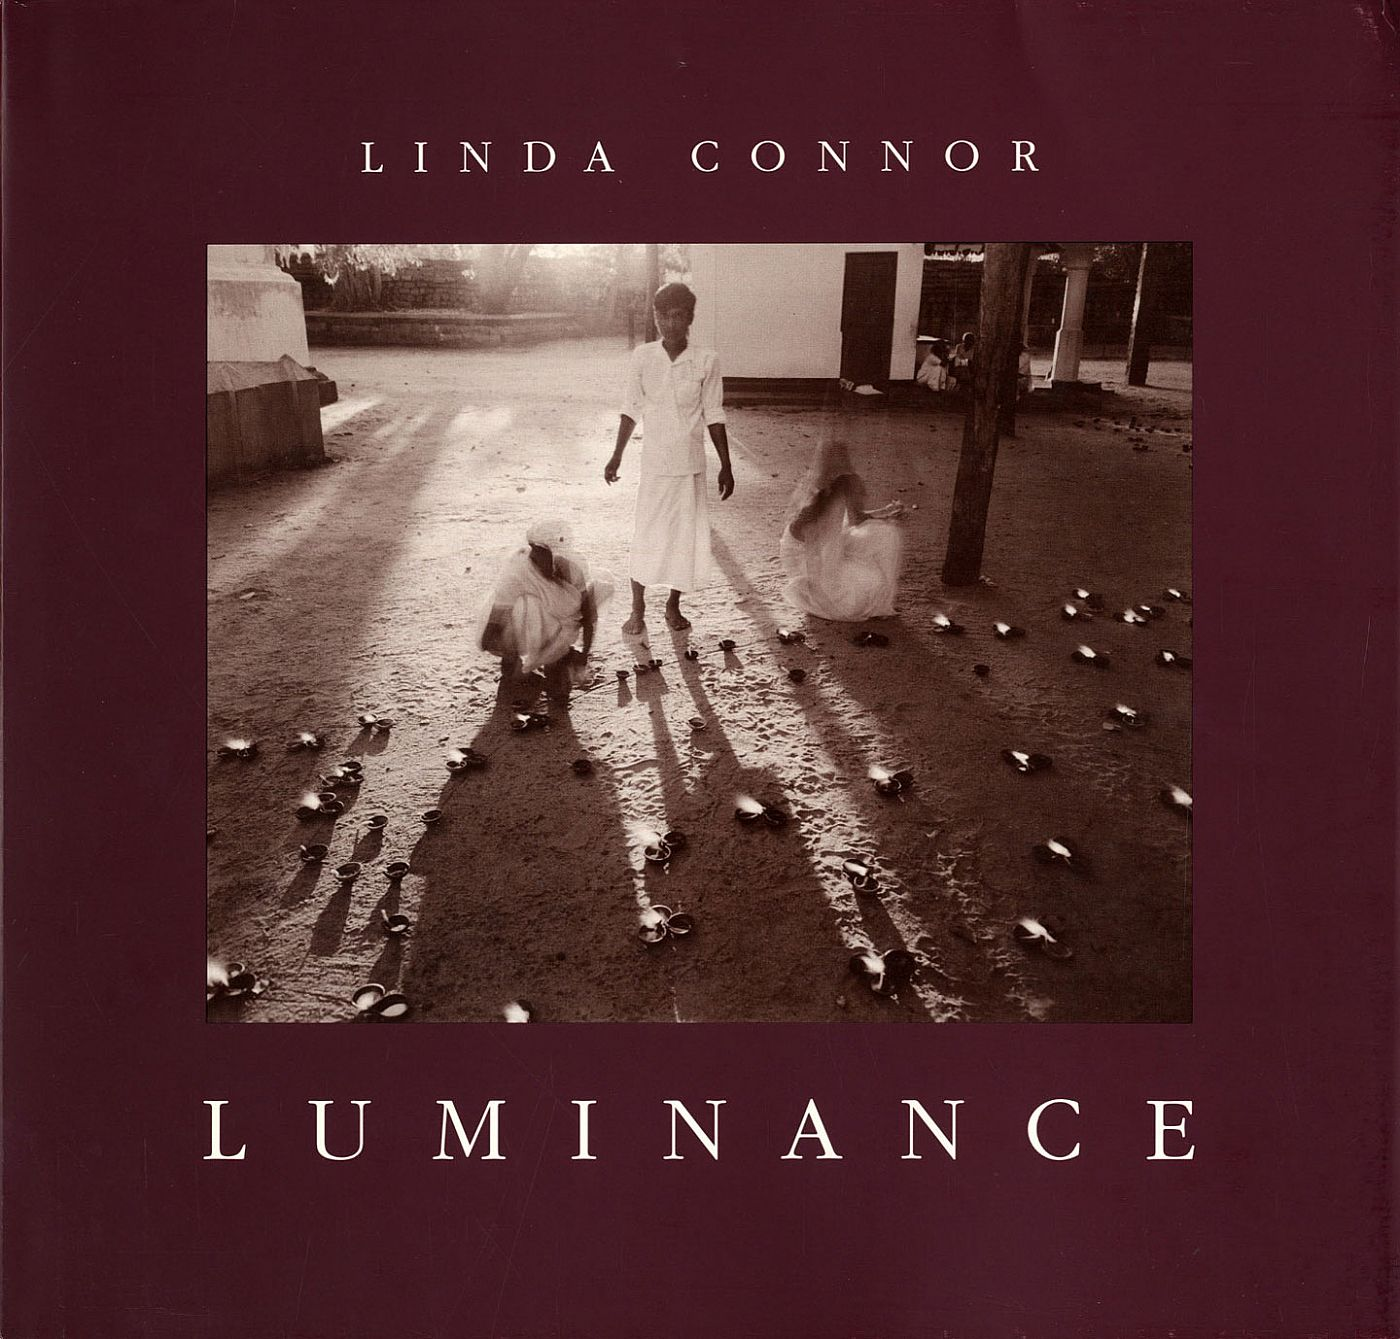 Linda Connor: Luminance